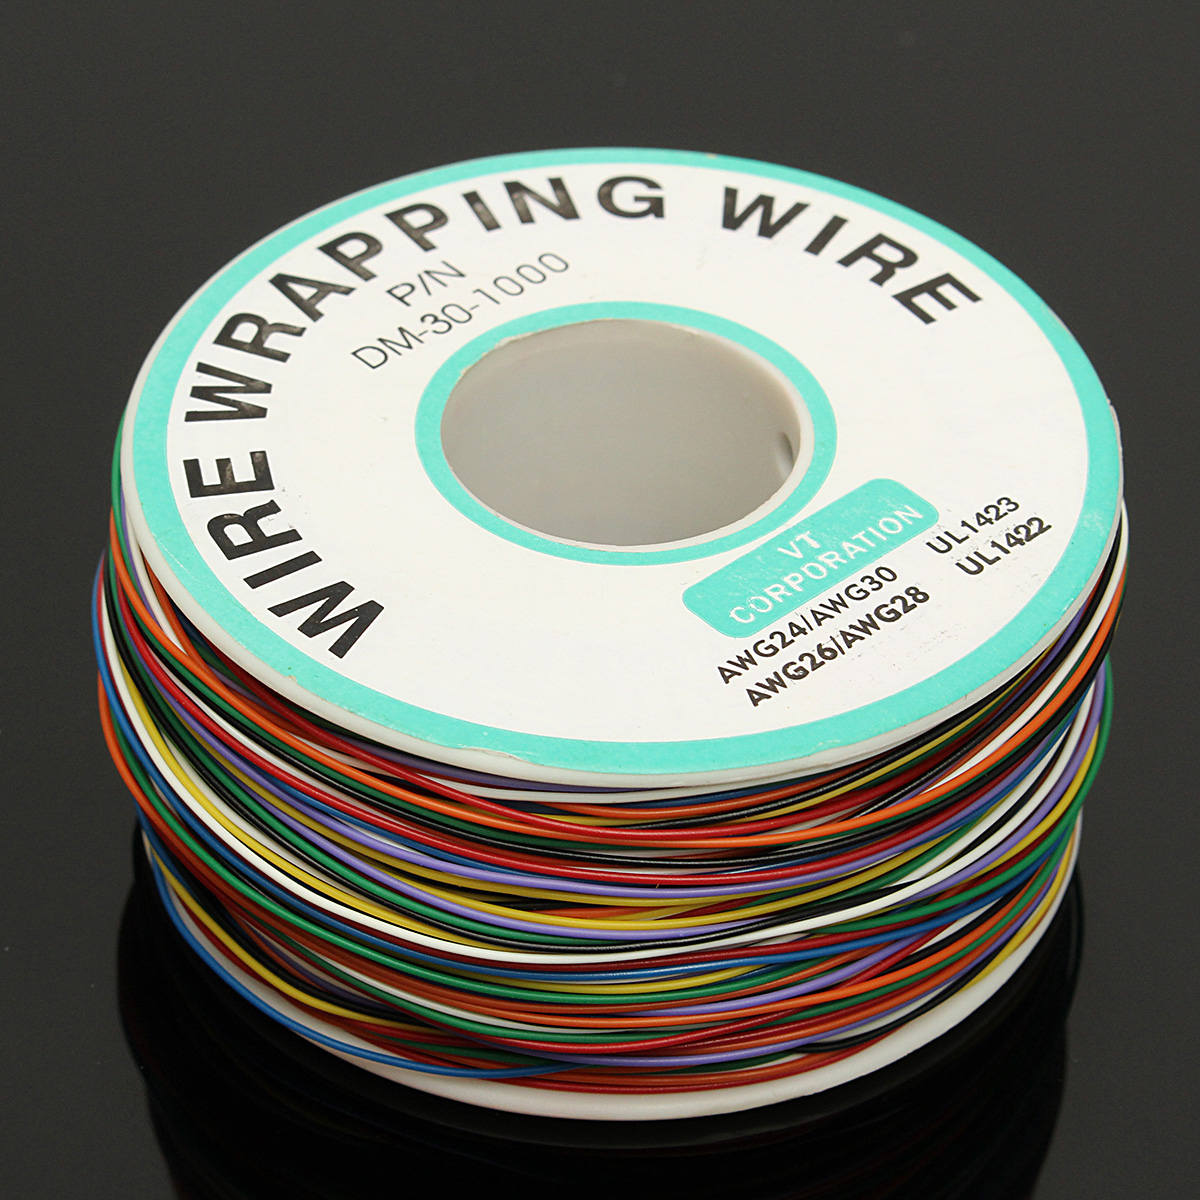 250M 8-Wire Colored Insulated P/N B-30-1000 30AWG Wire Wrapping ...